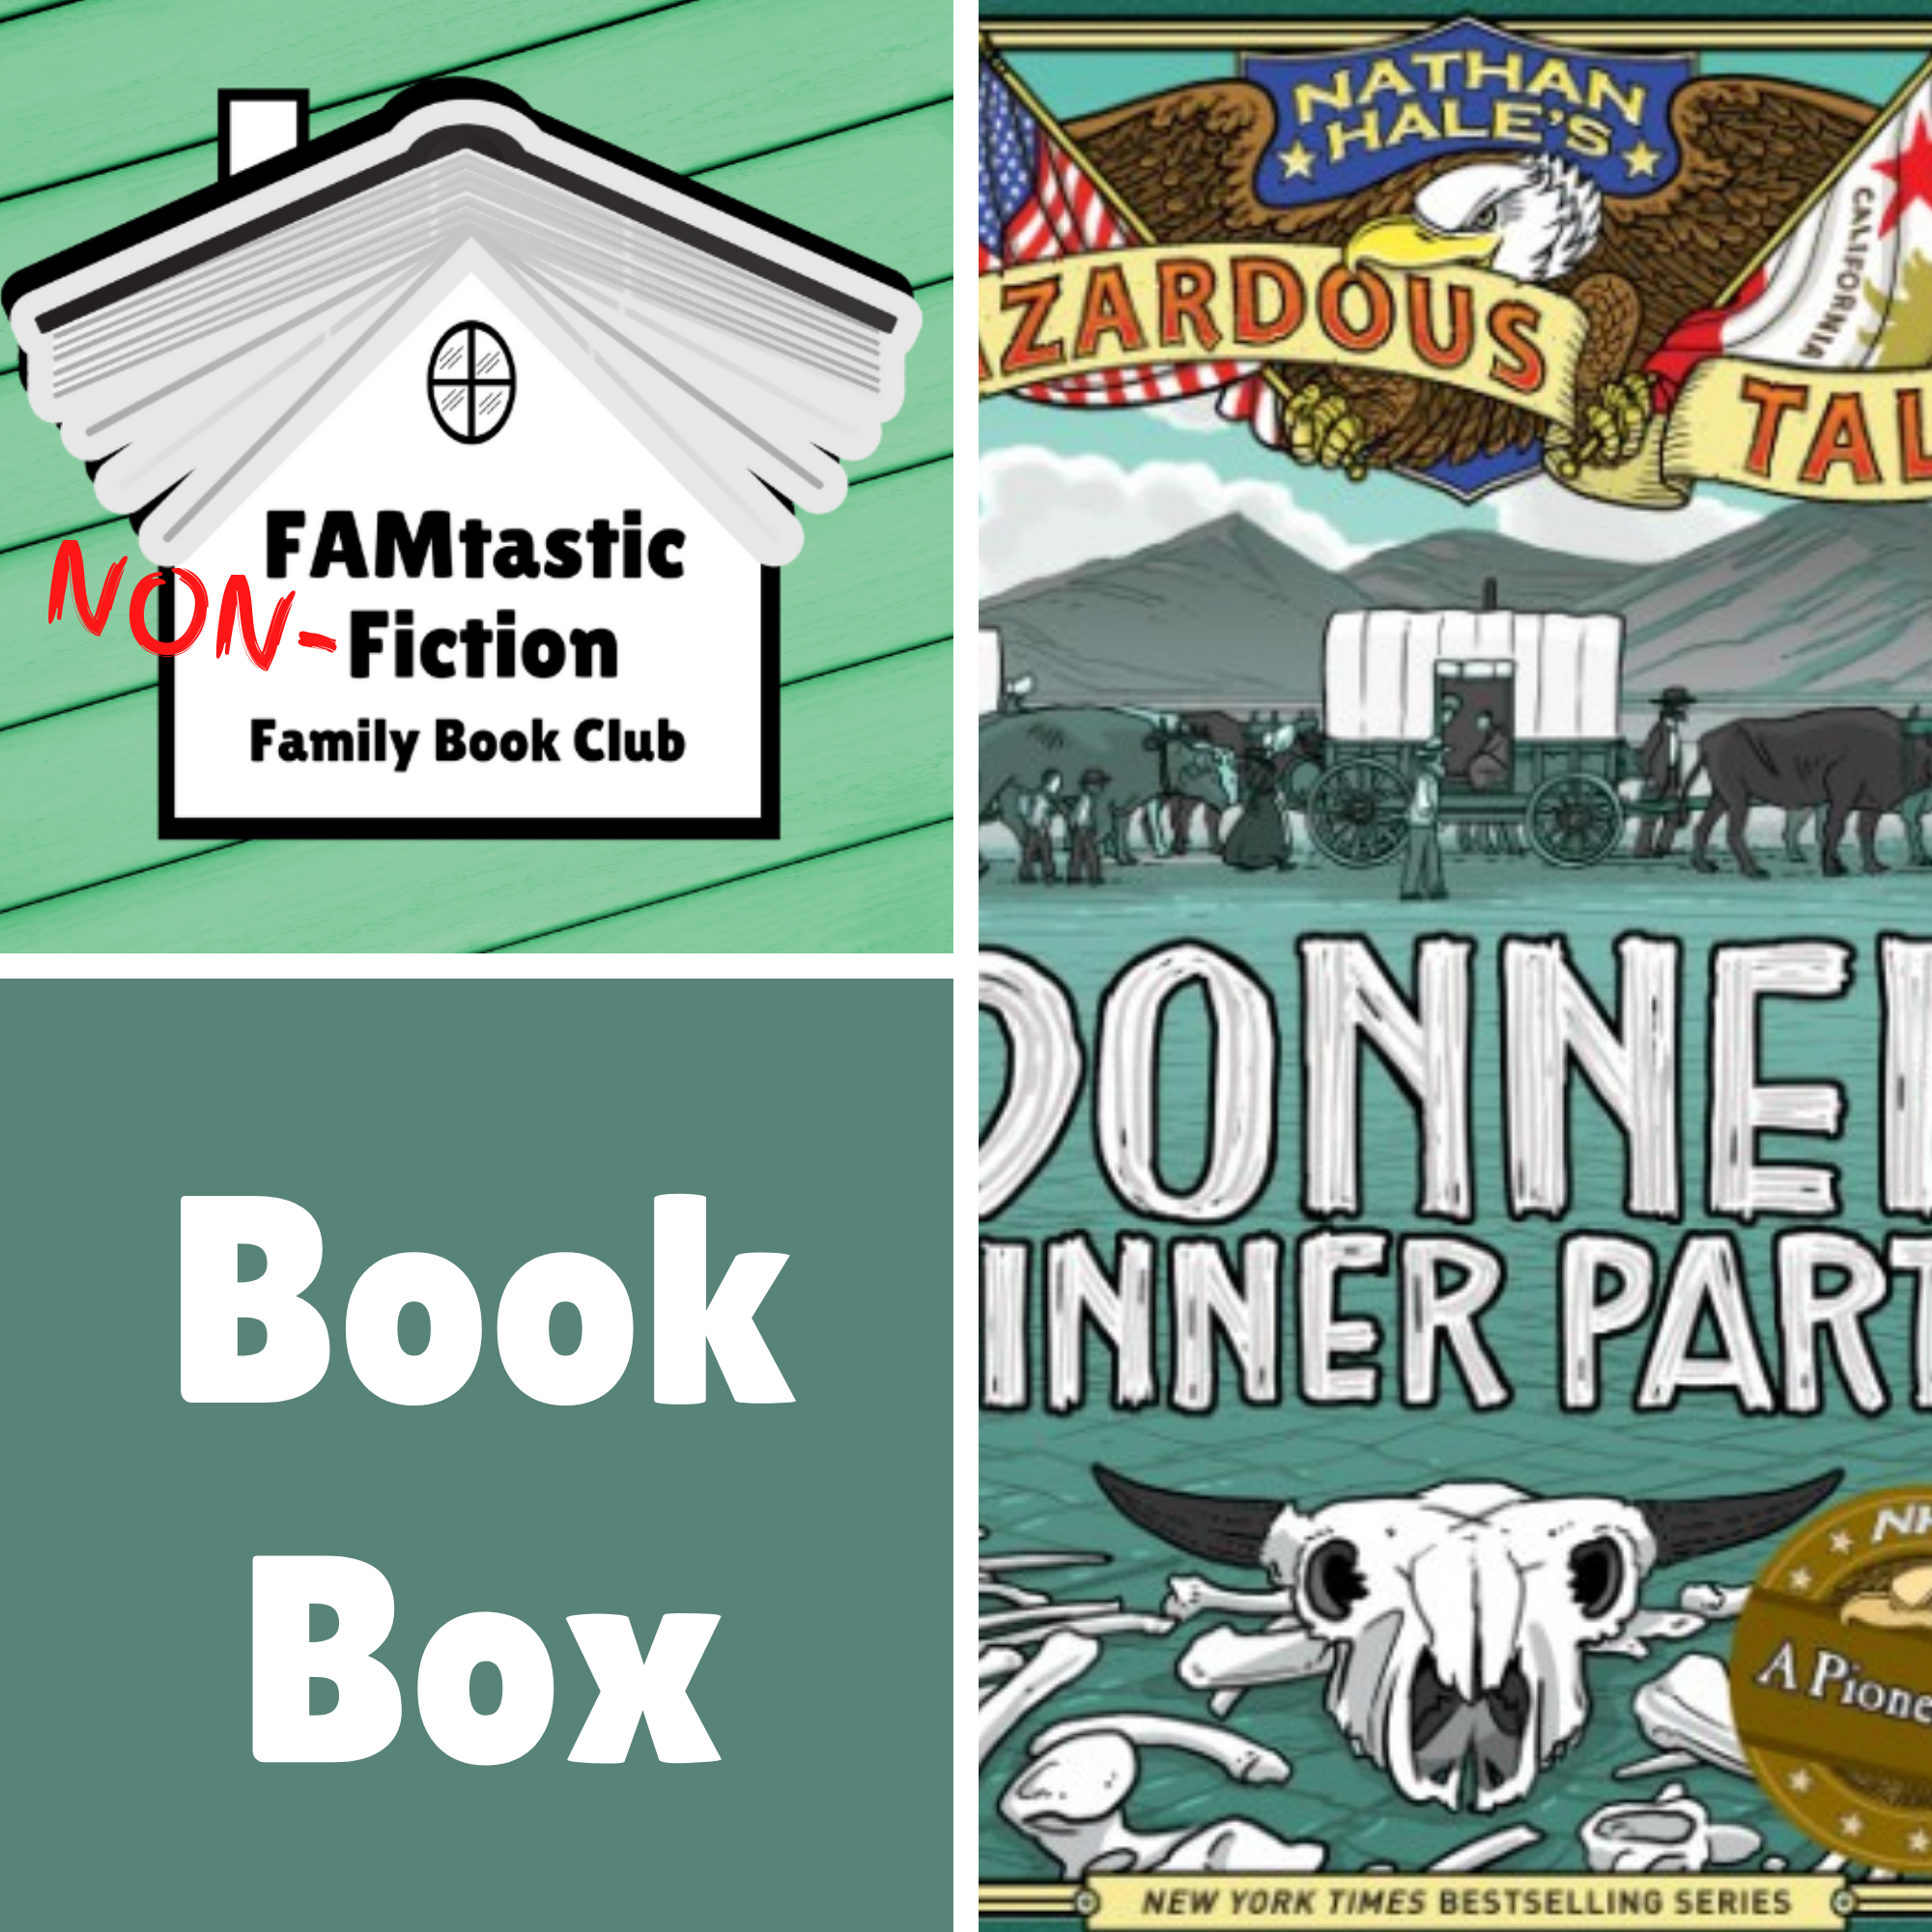 FAMtastic NON-Fiction Book Box: Donner Dinner Party